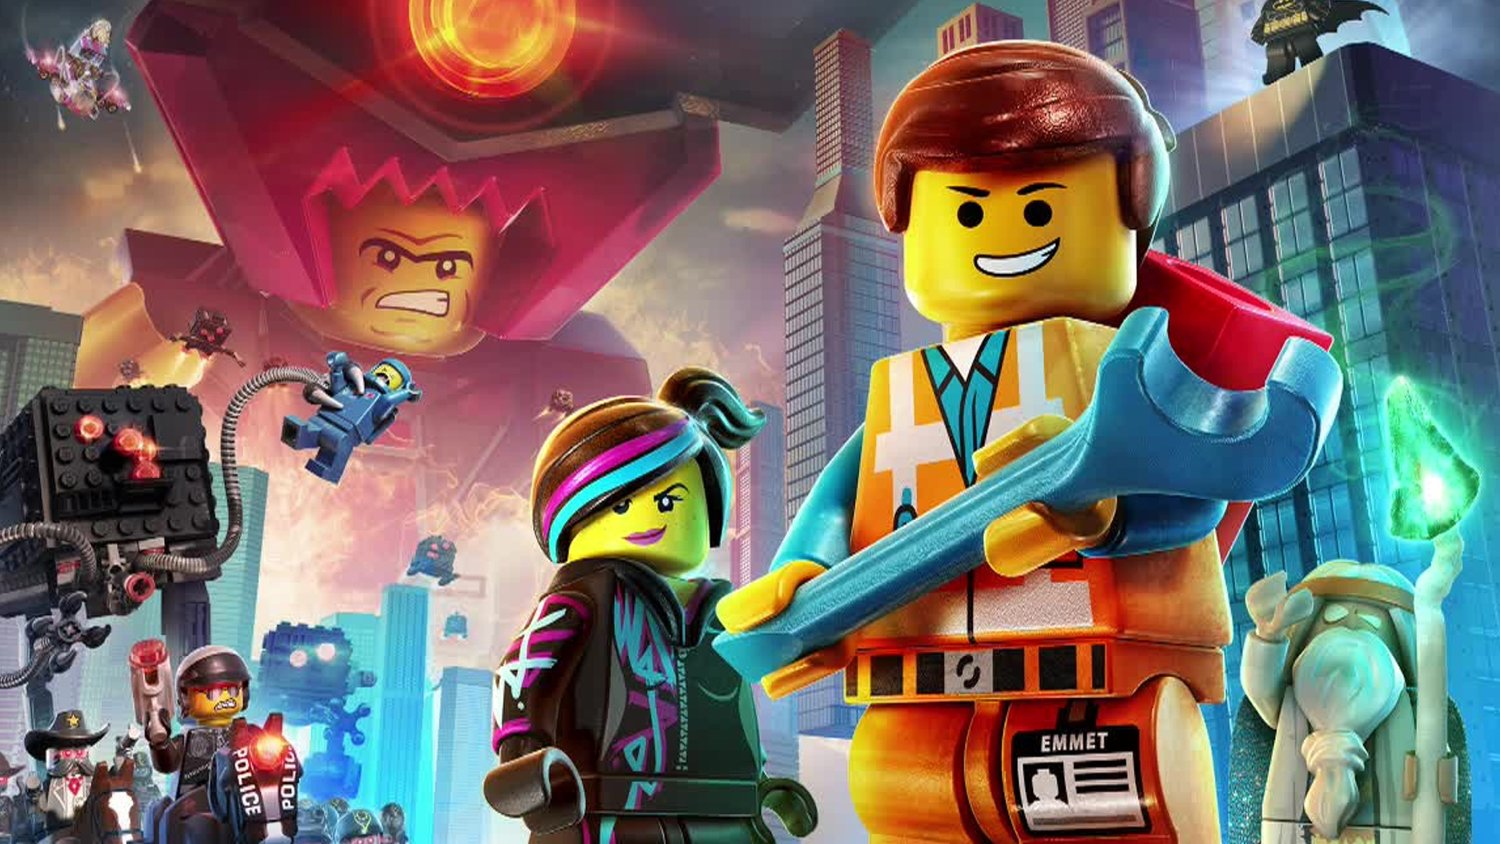 THE LEGO MOVIE Sequel Will Be Helmed by TROLLS Director Mike Mitchell